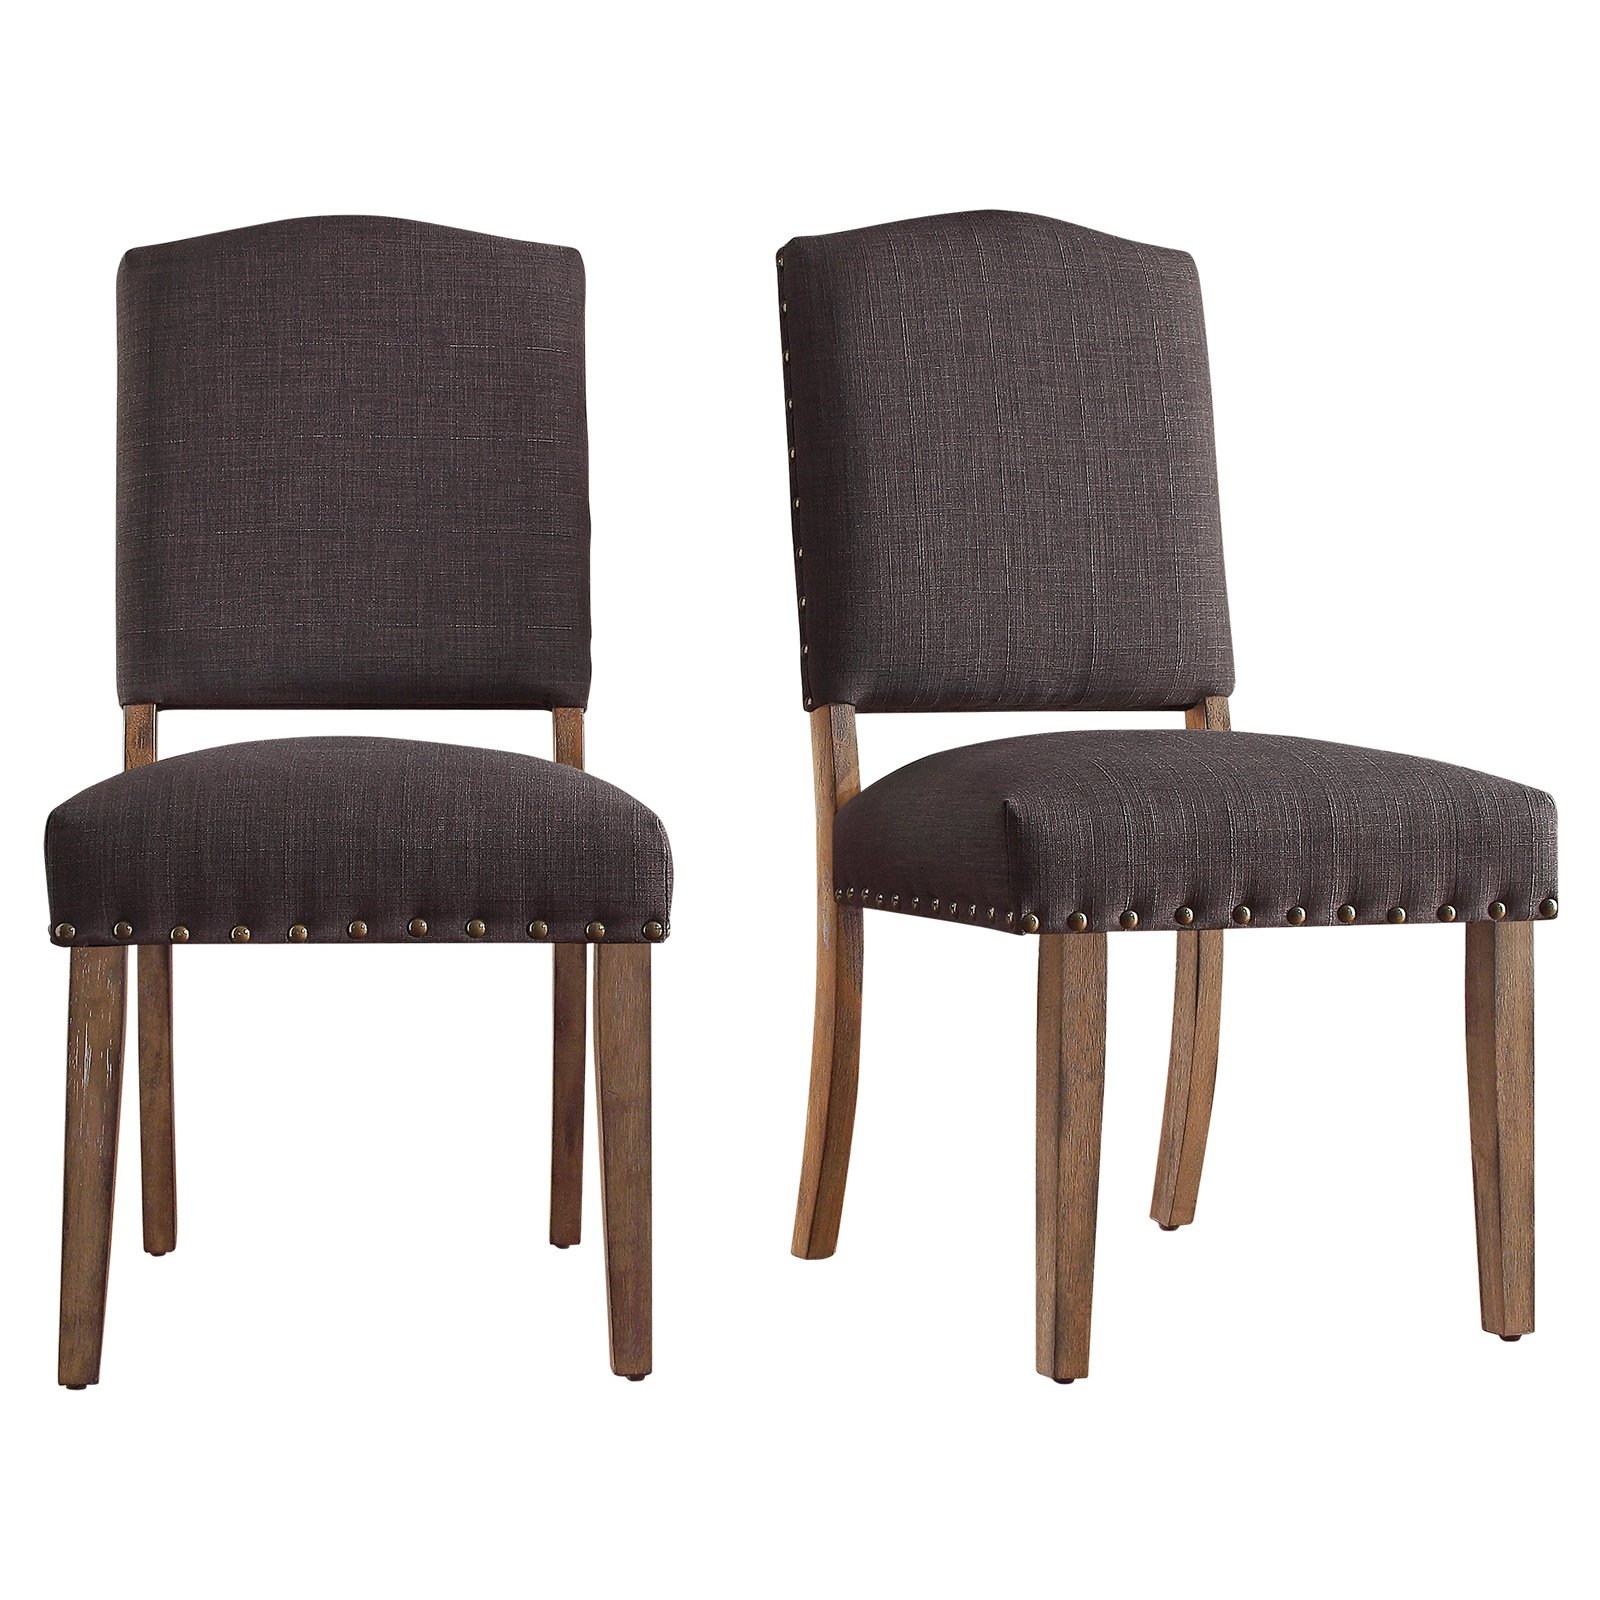 Admirable Weston Home Nailhead Dining Side Chair Set Of 2 Gray In Bralicious Painted Fabric Chair Ideas Braliciousco